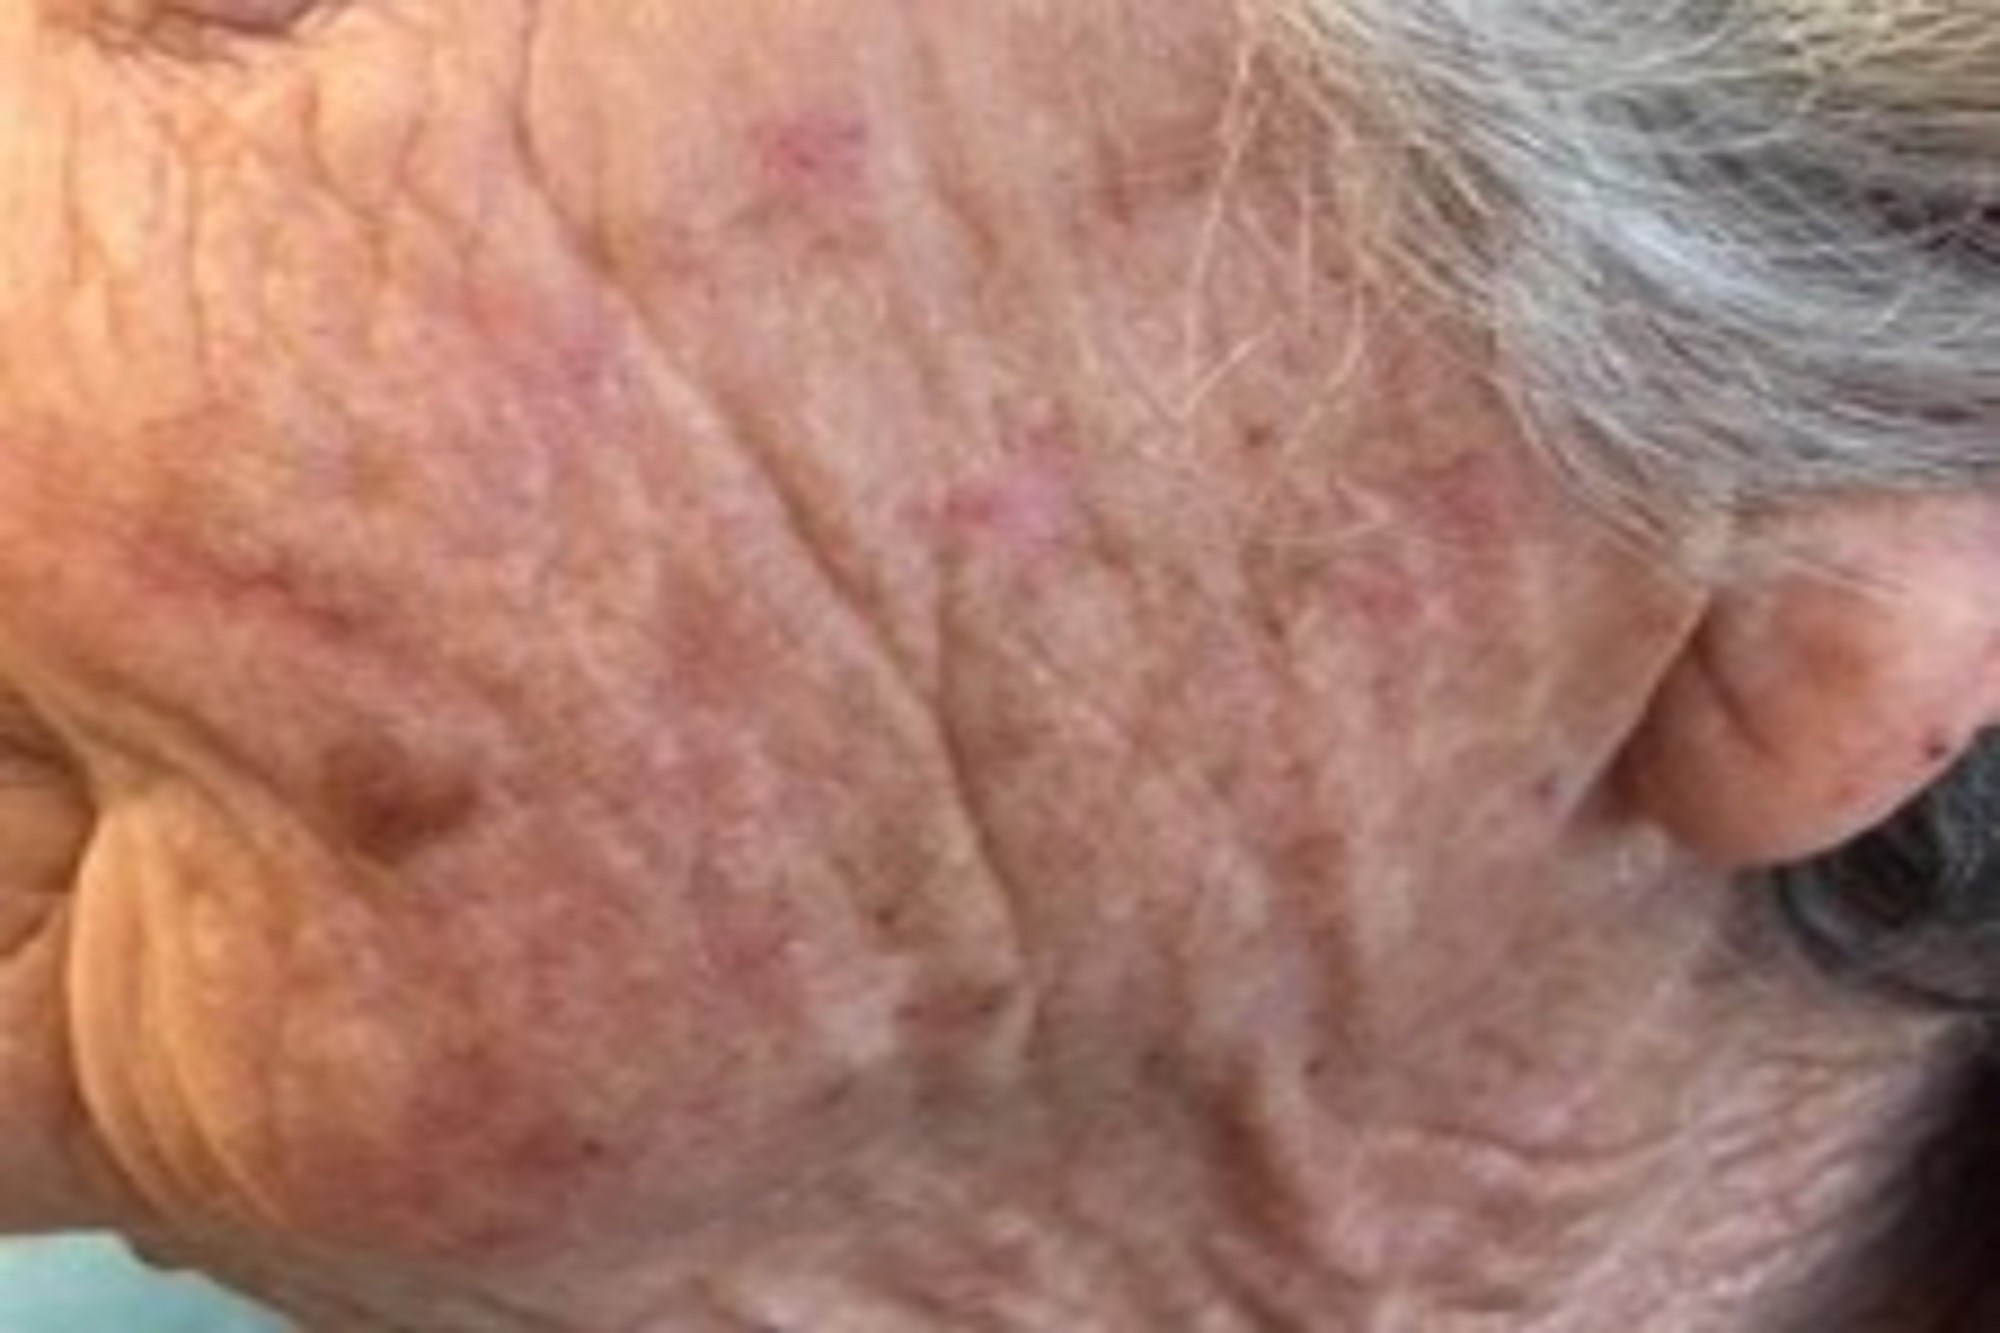 Actinic Keratoses: Field Cancerization and Photodynamic Therapy